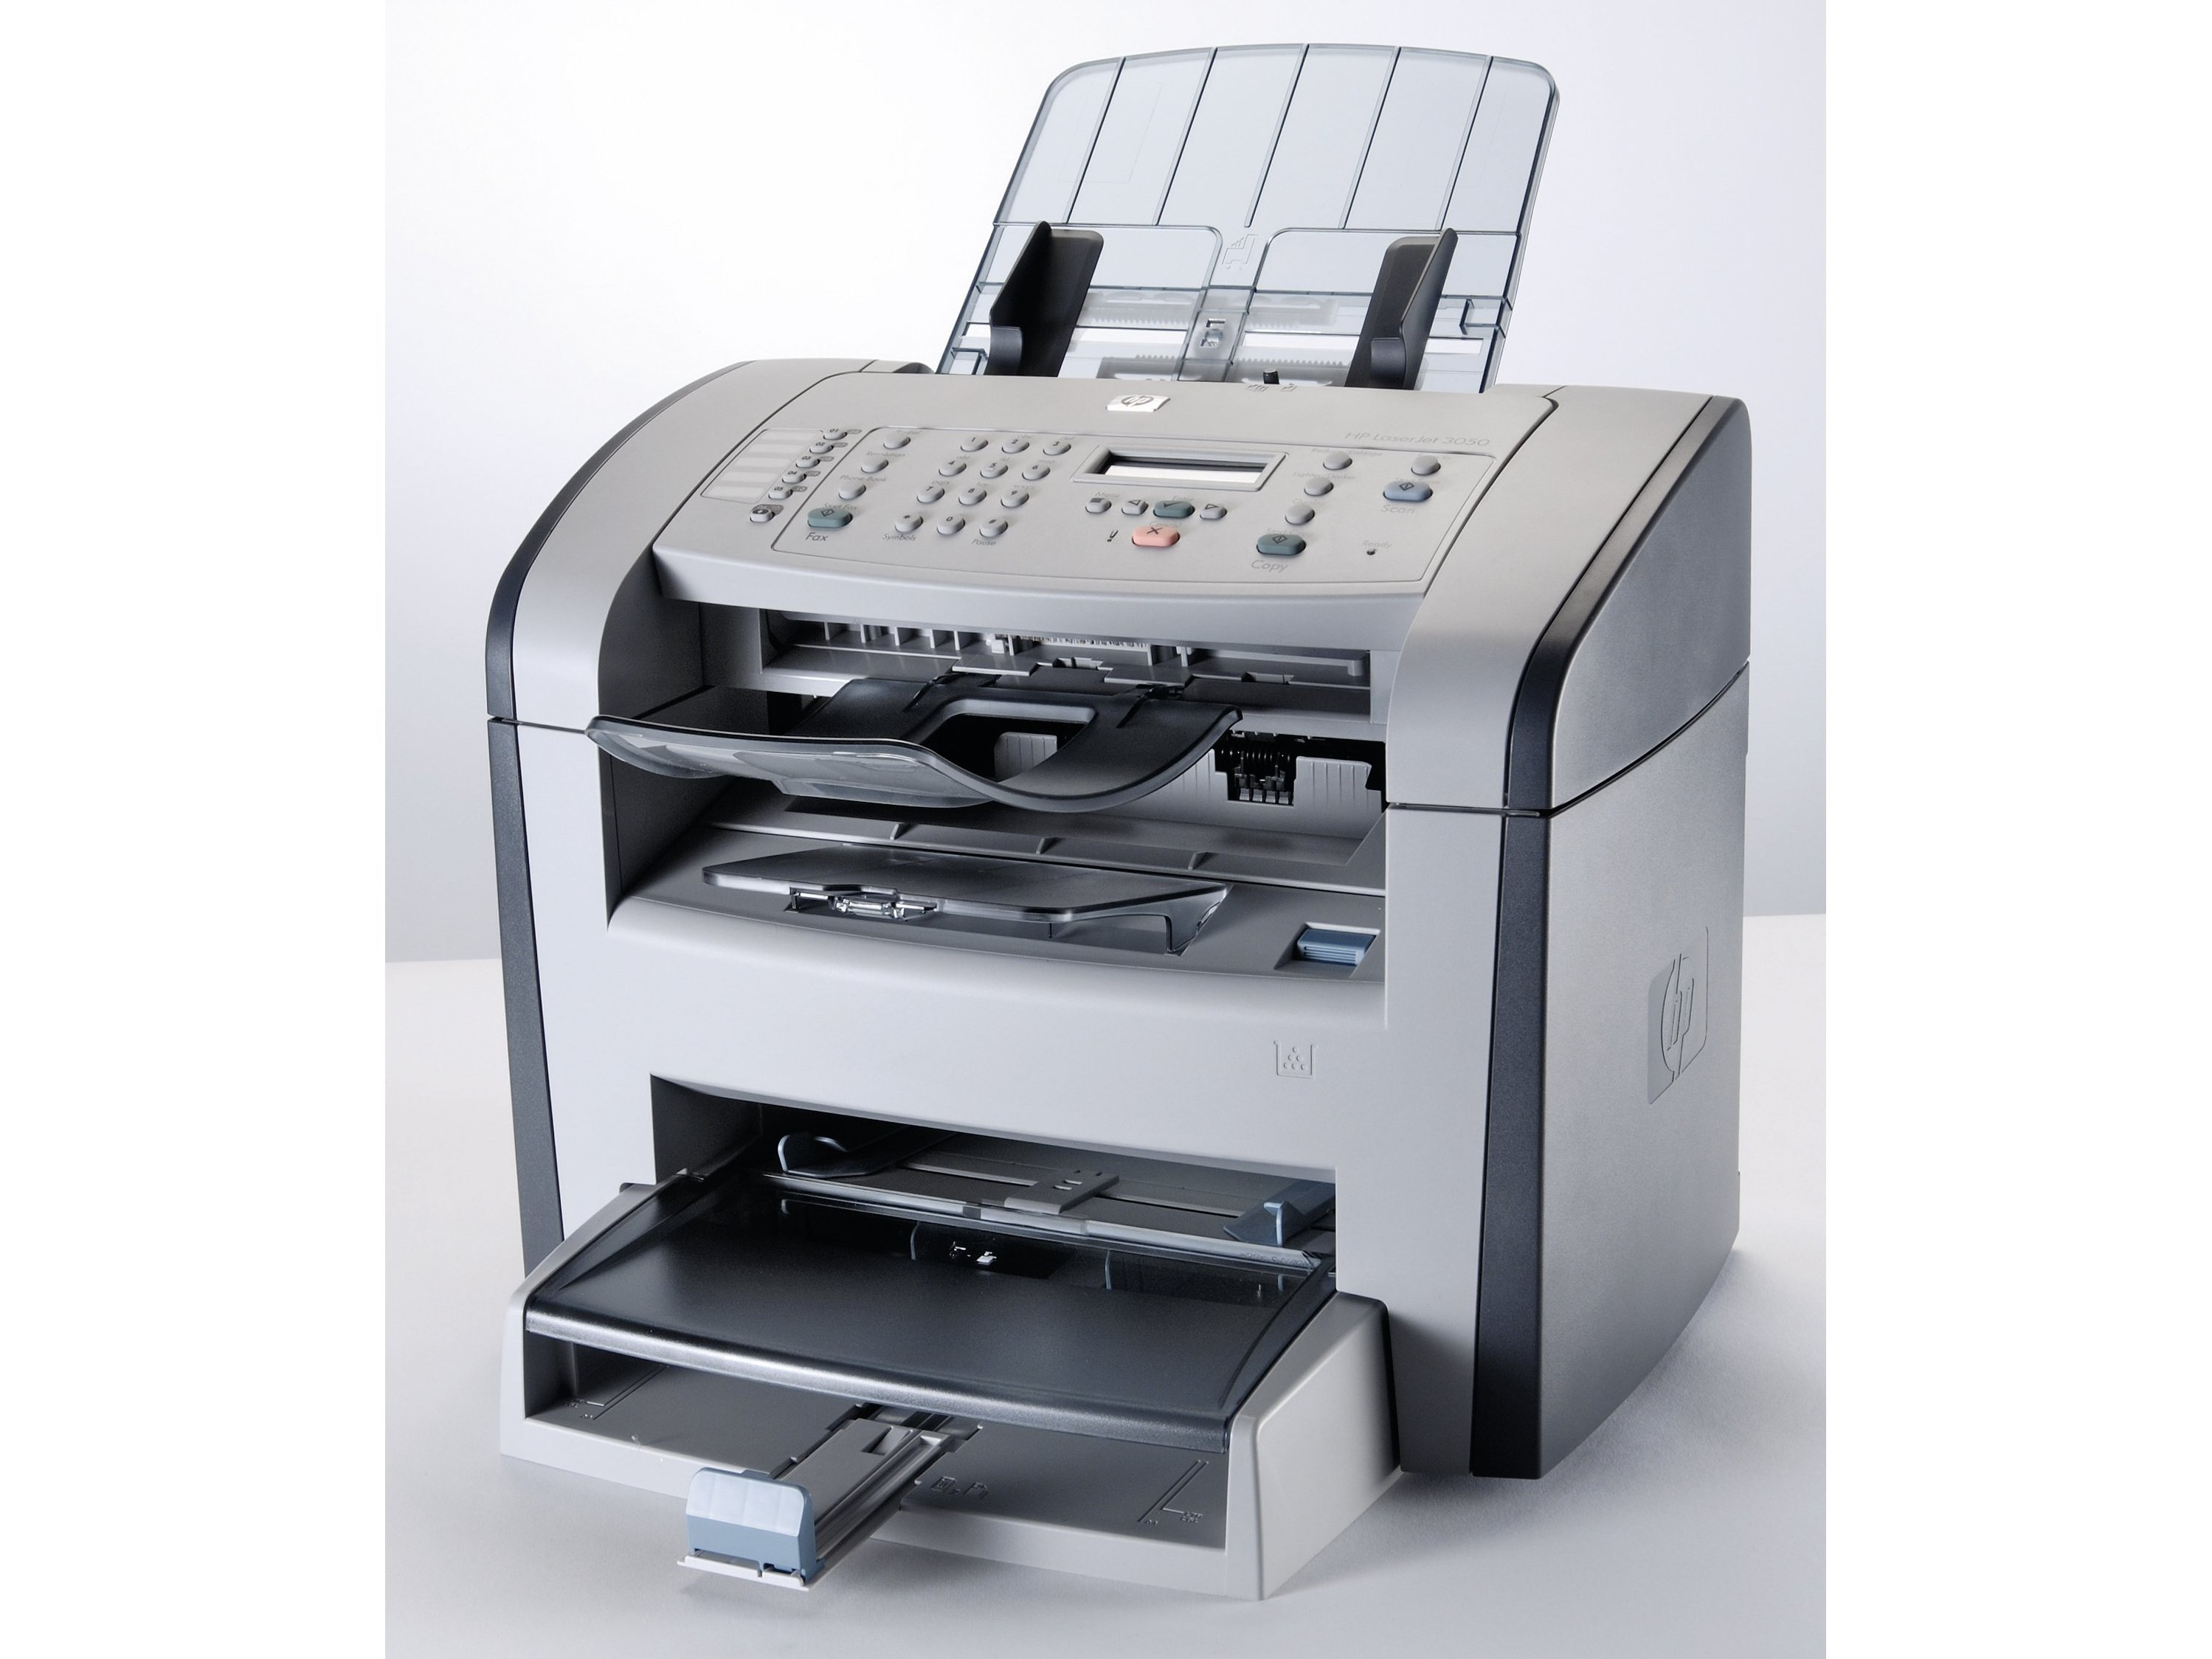 HP PSC 1310 All-in-One Printer series